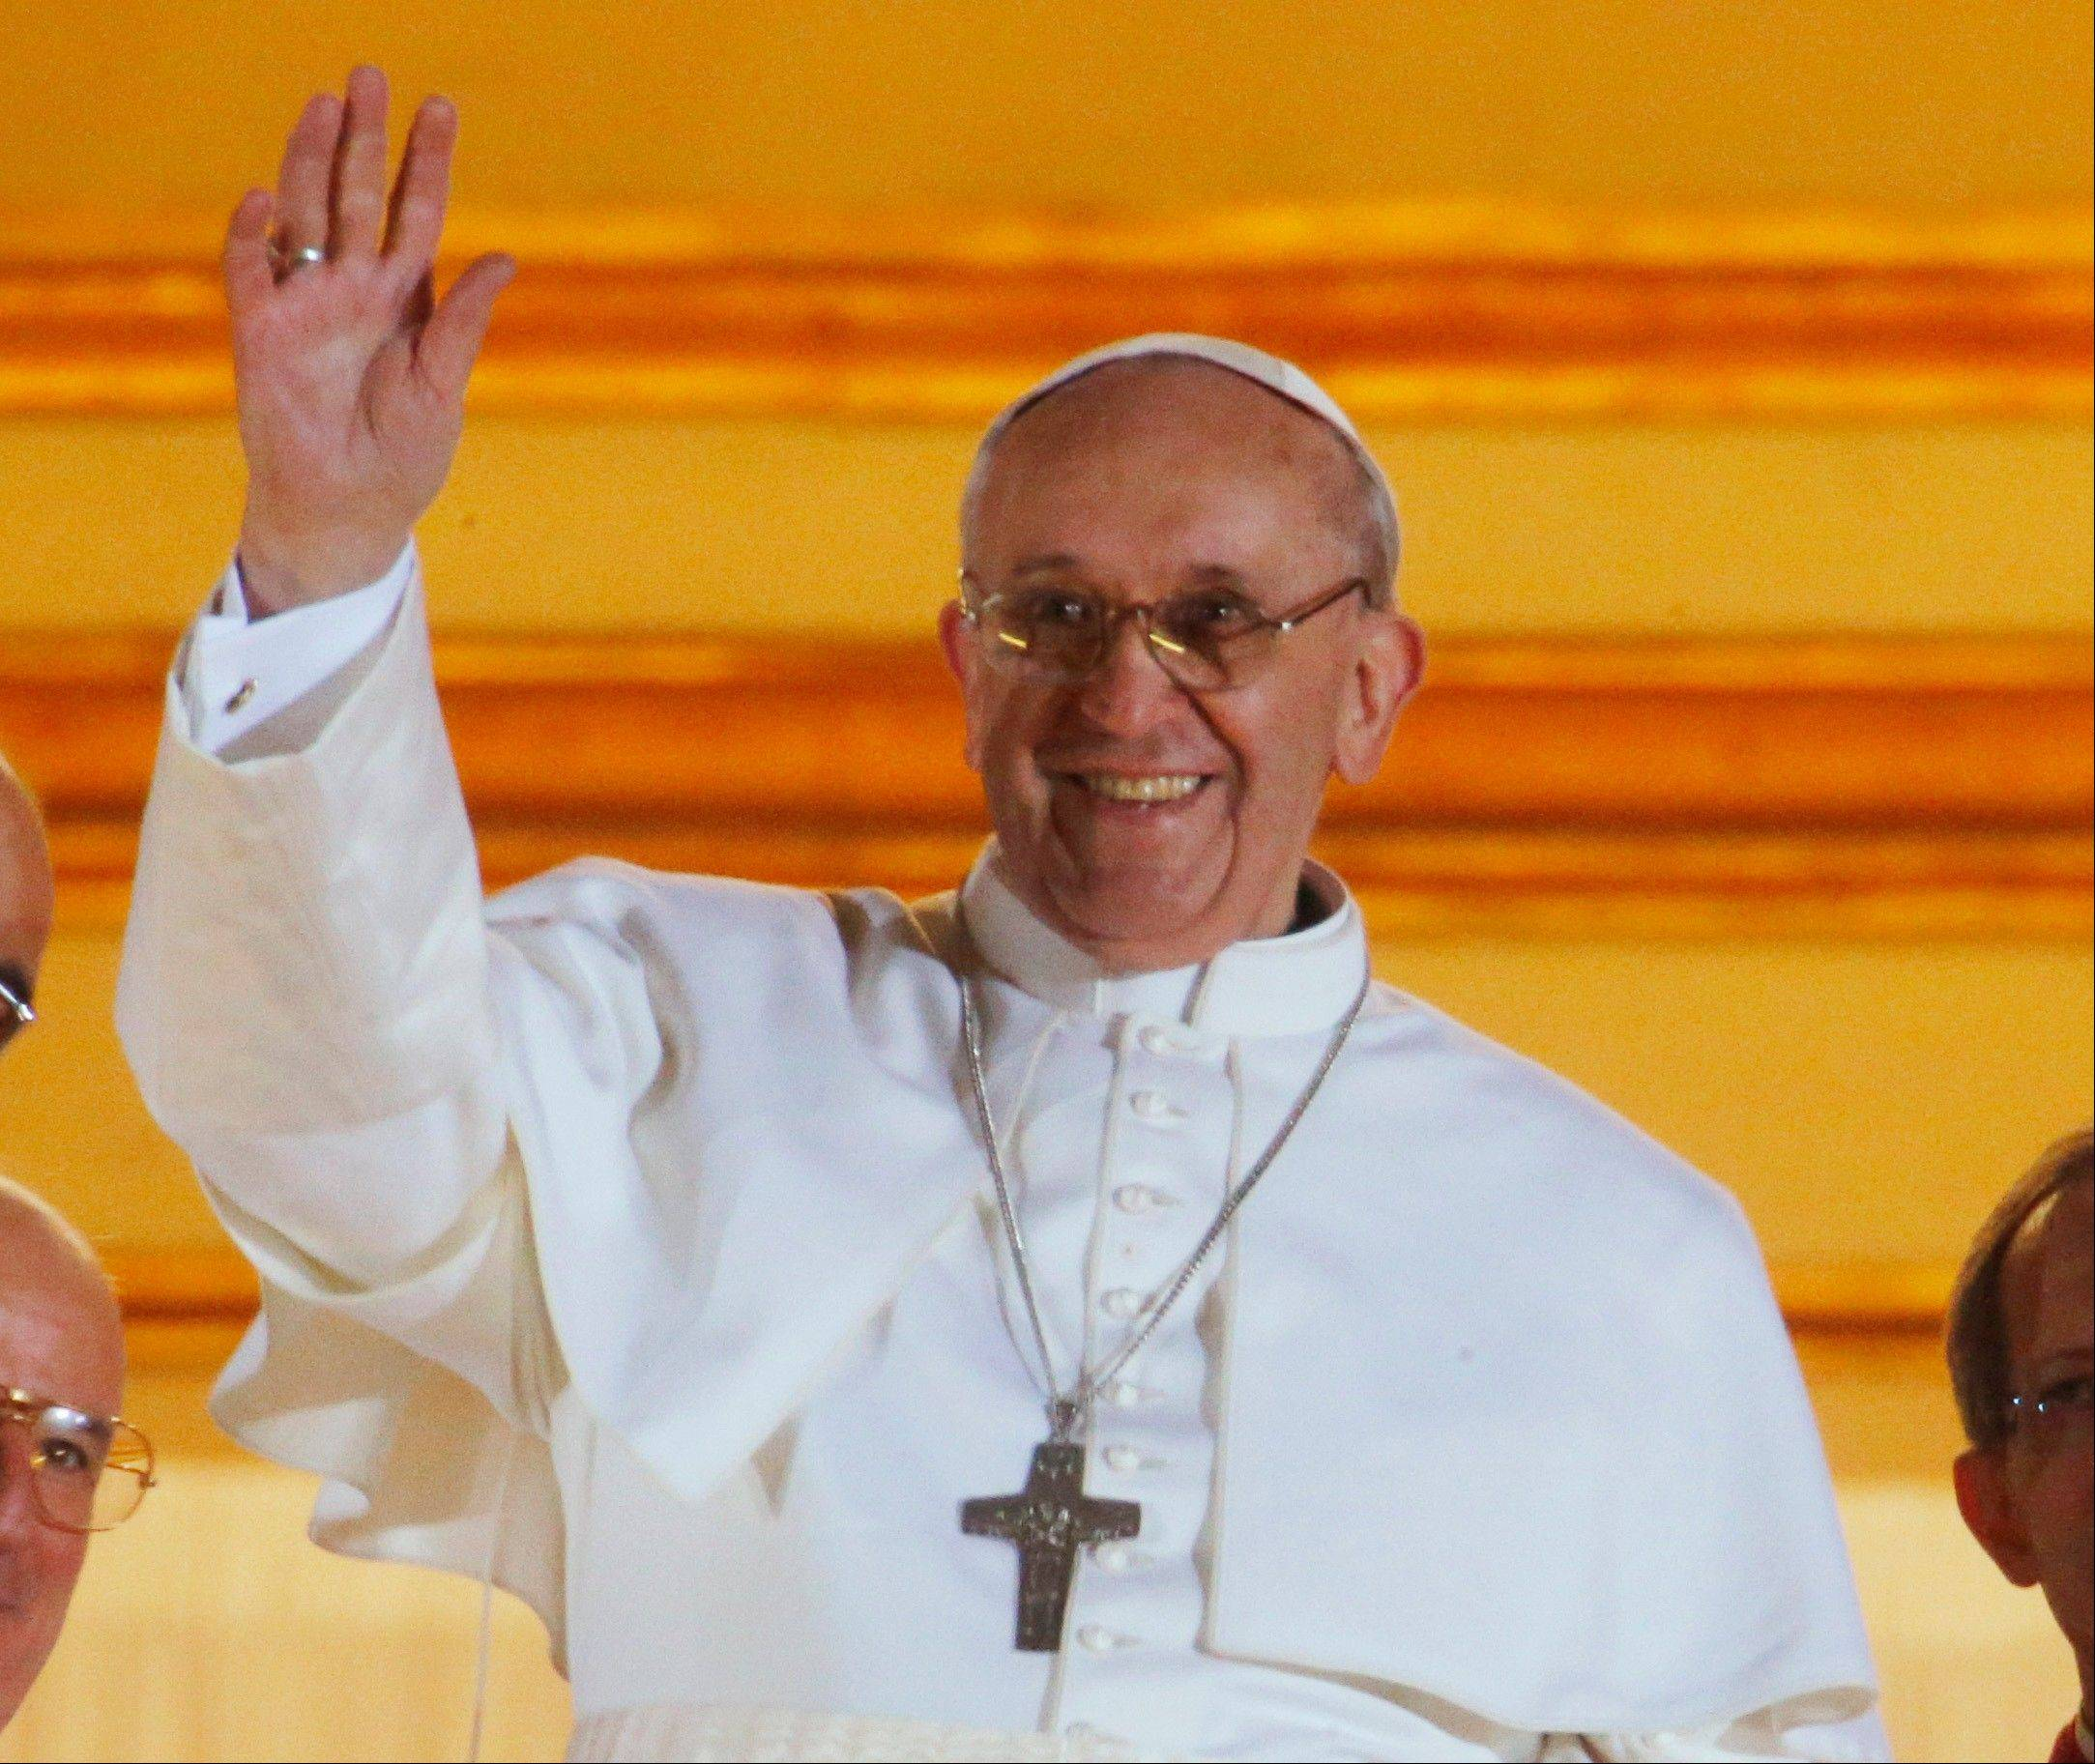 Pope Francis waves to the crowd Wednesday from the central balcony of St. Peter's Basilica at the Vatican. Cardinal Jorge Bergoglio, who chose the name of Francis, is the 266th pontiff of the Roman Catholic Church.